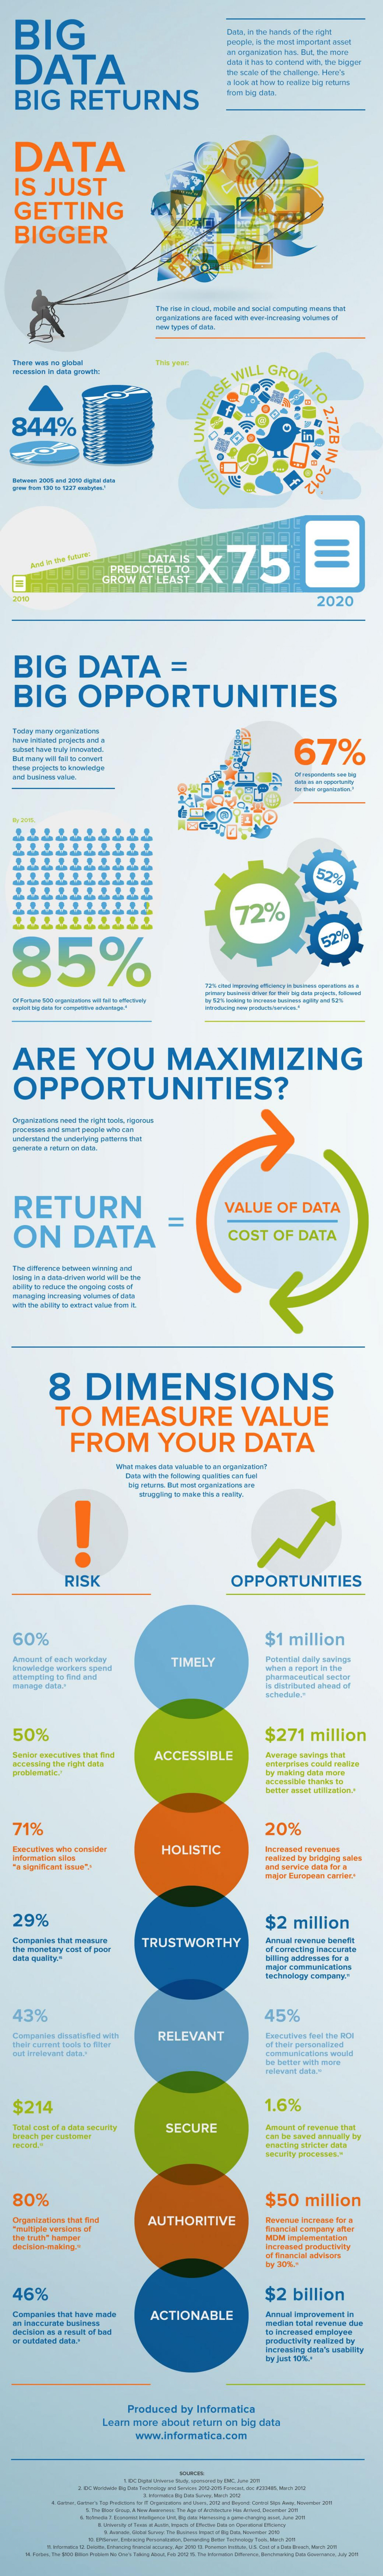 Big Data, Big Returns Infographic